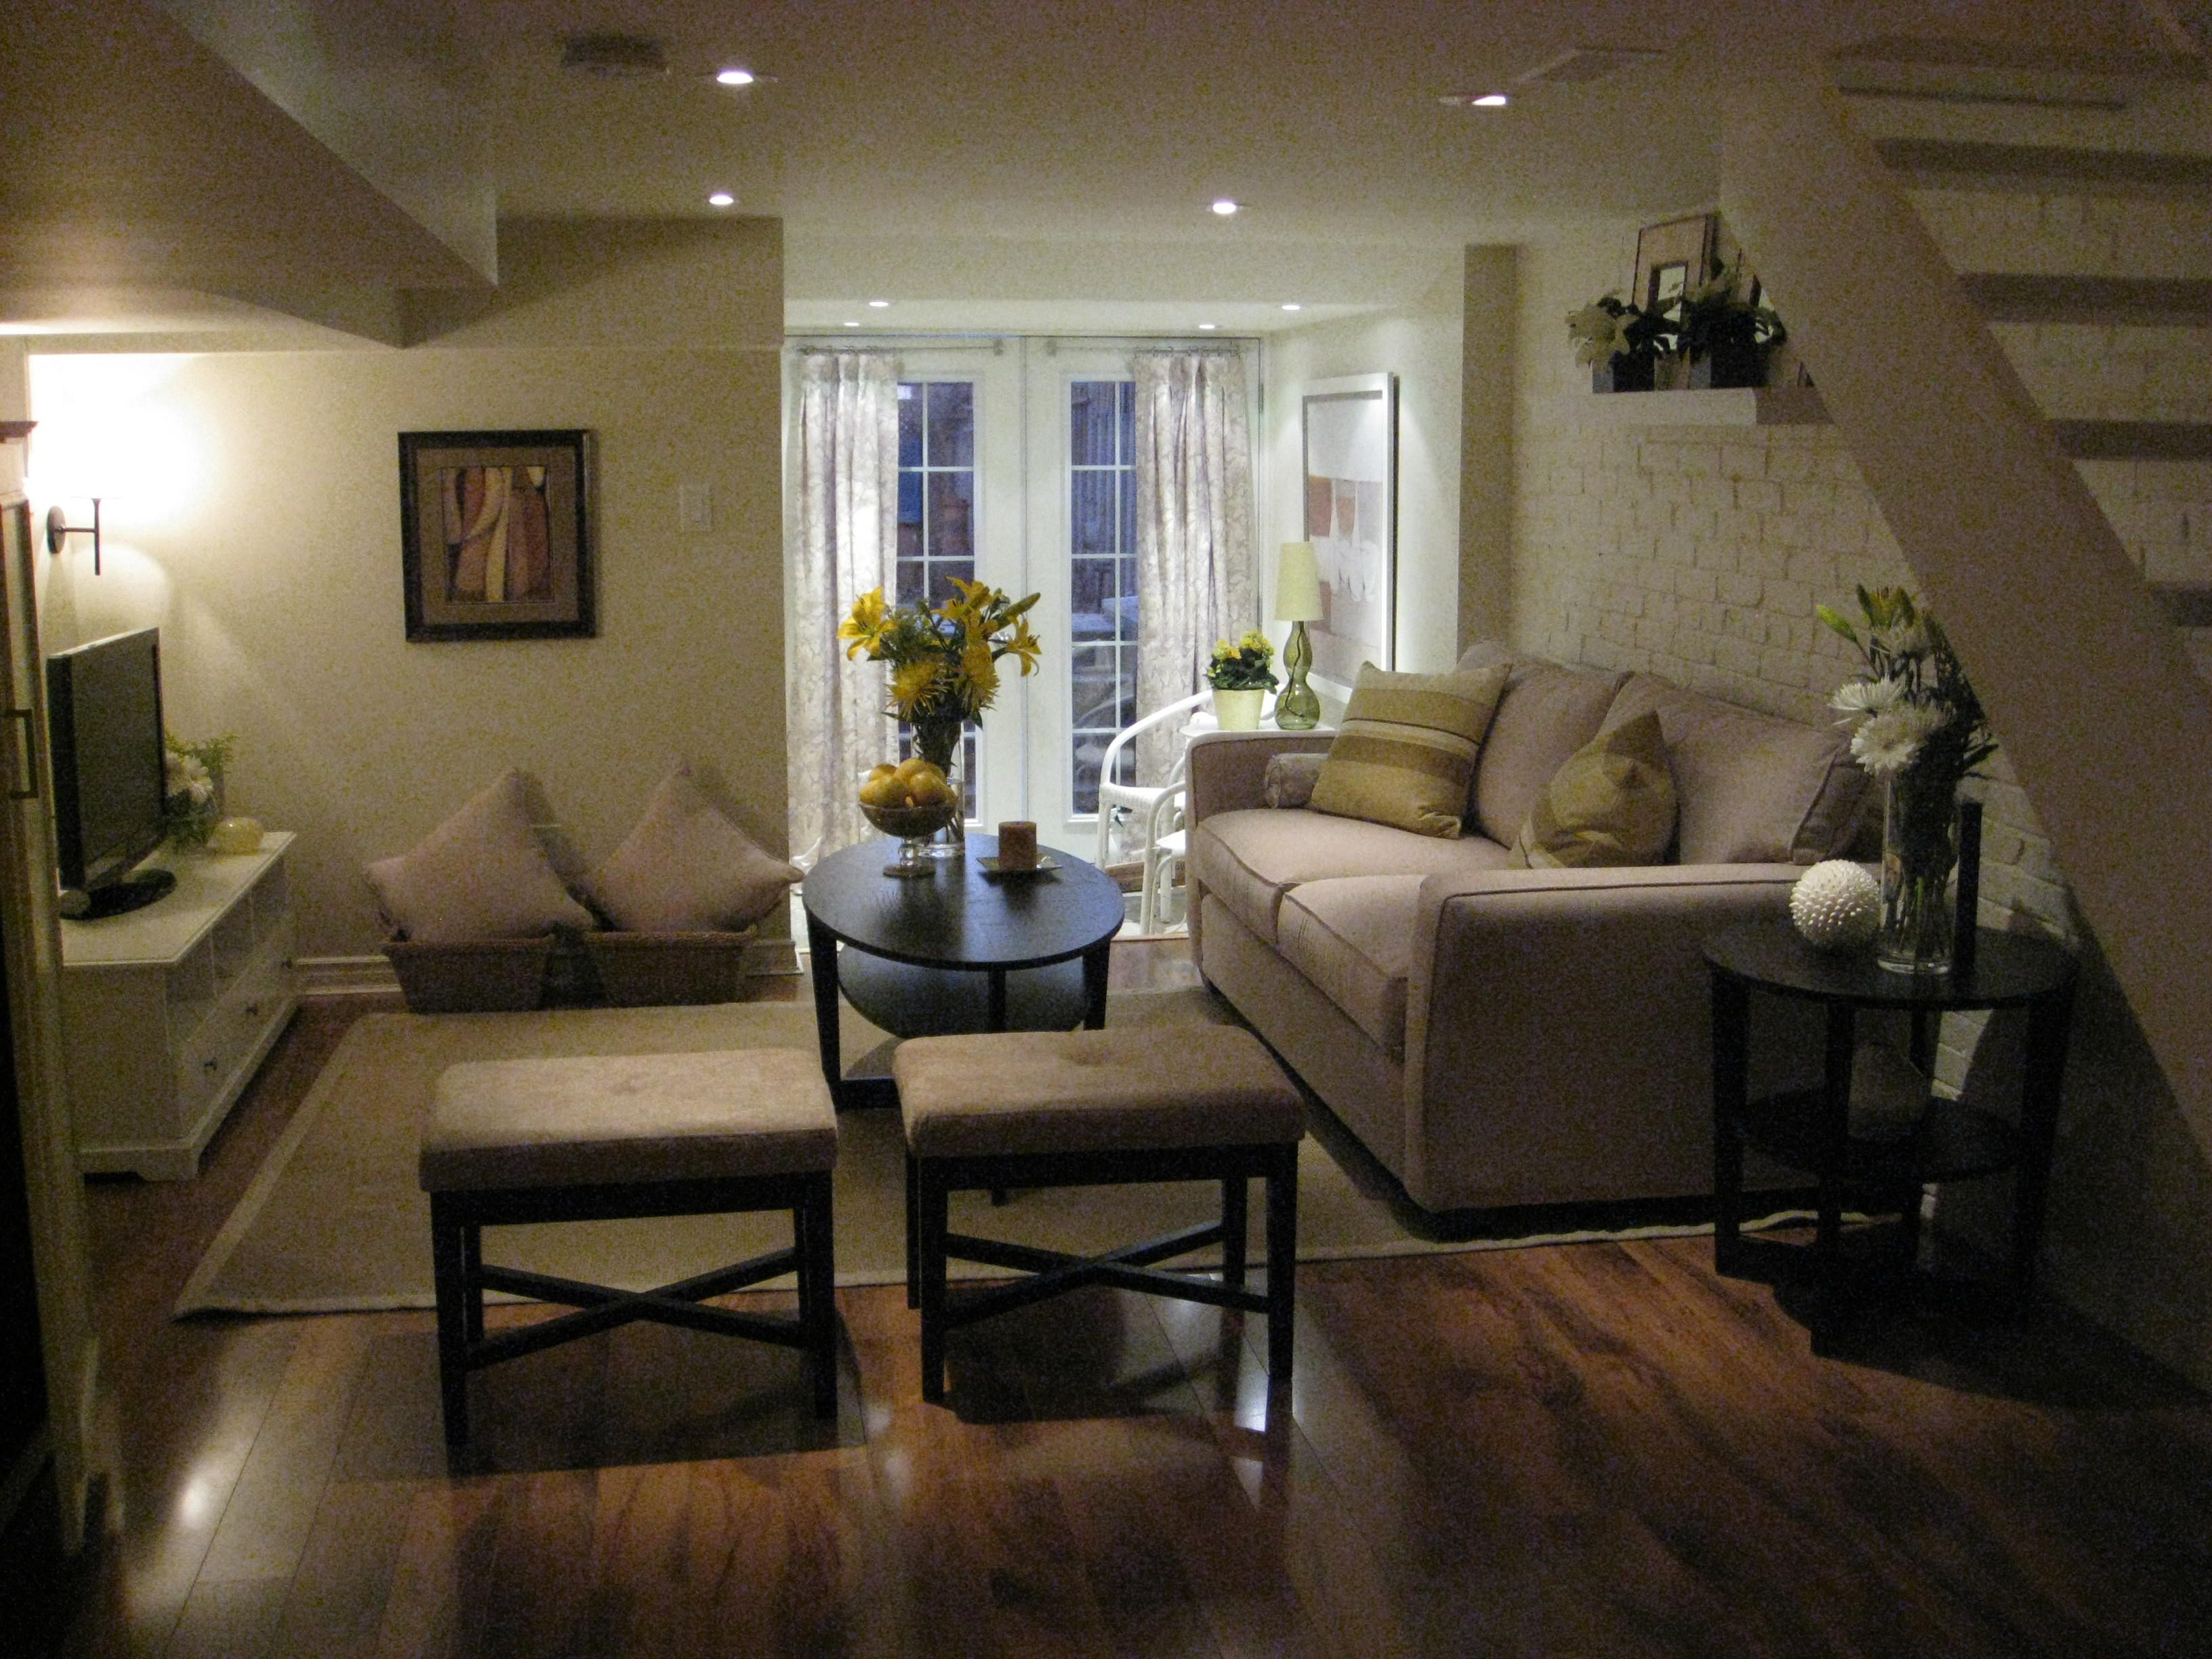 Living Room Design For Small Spaces Fair Small Basement Family Room Ideas  Living Room 21 Fascinating Design Inspiration